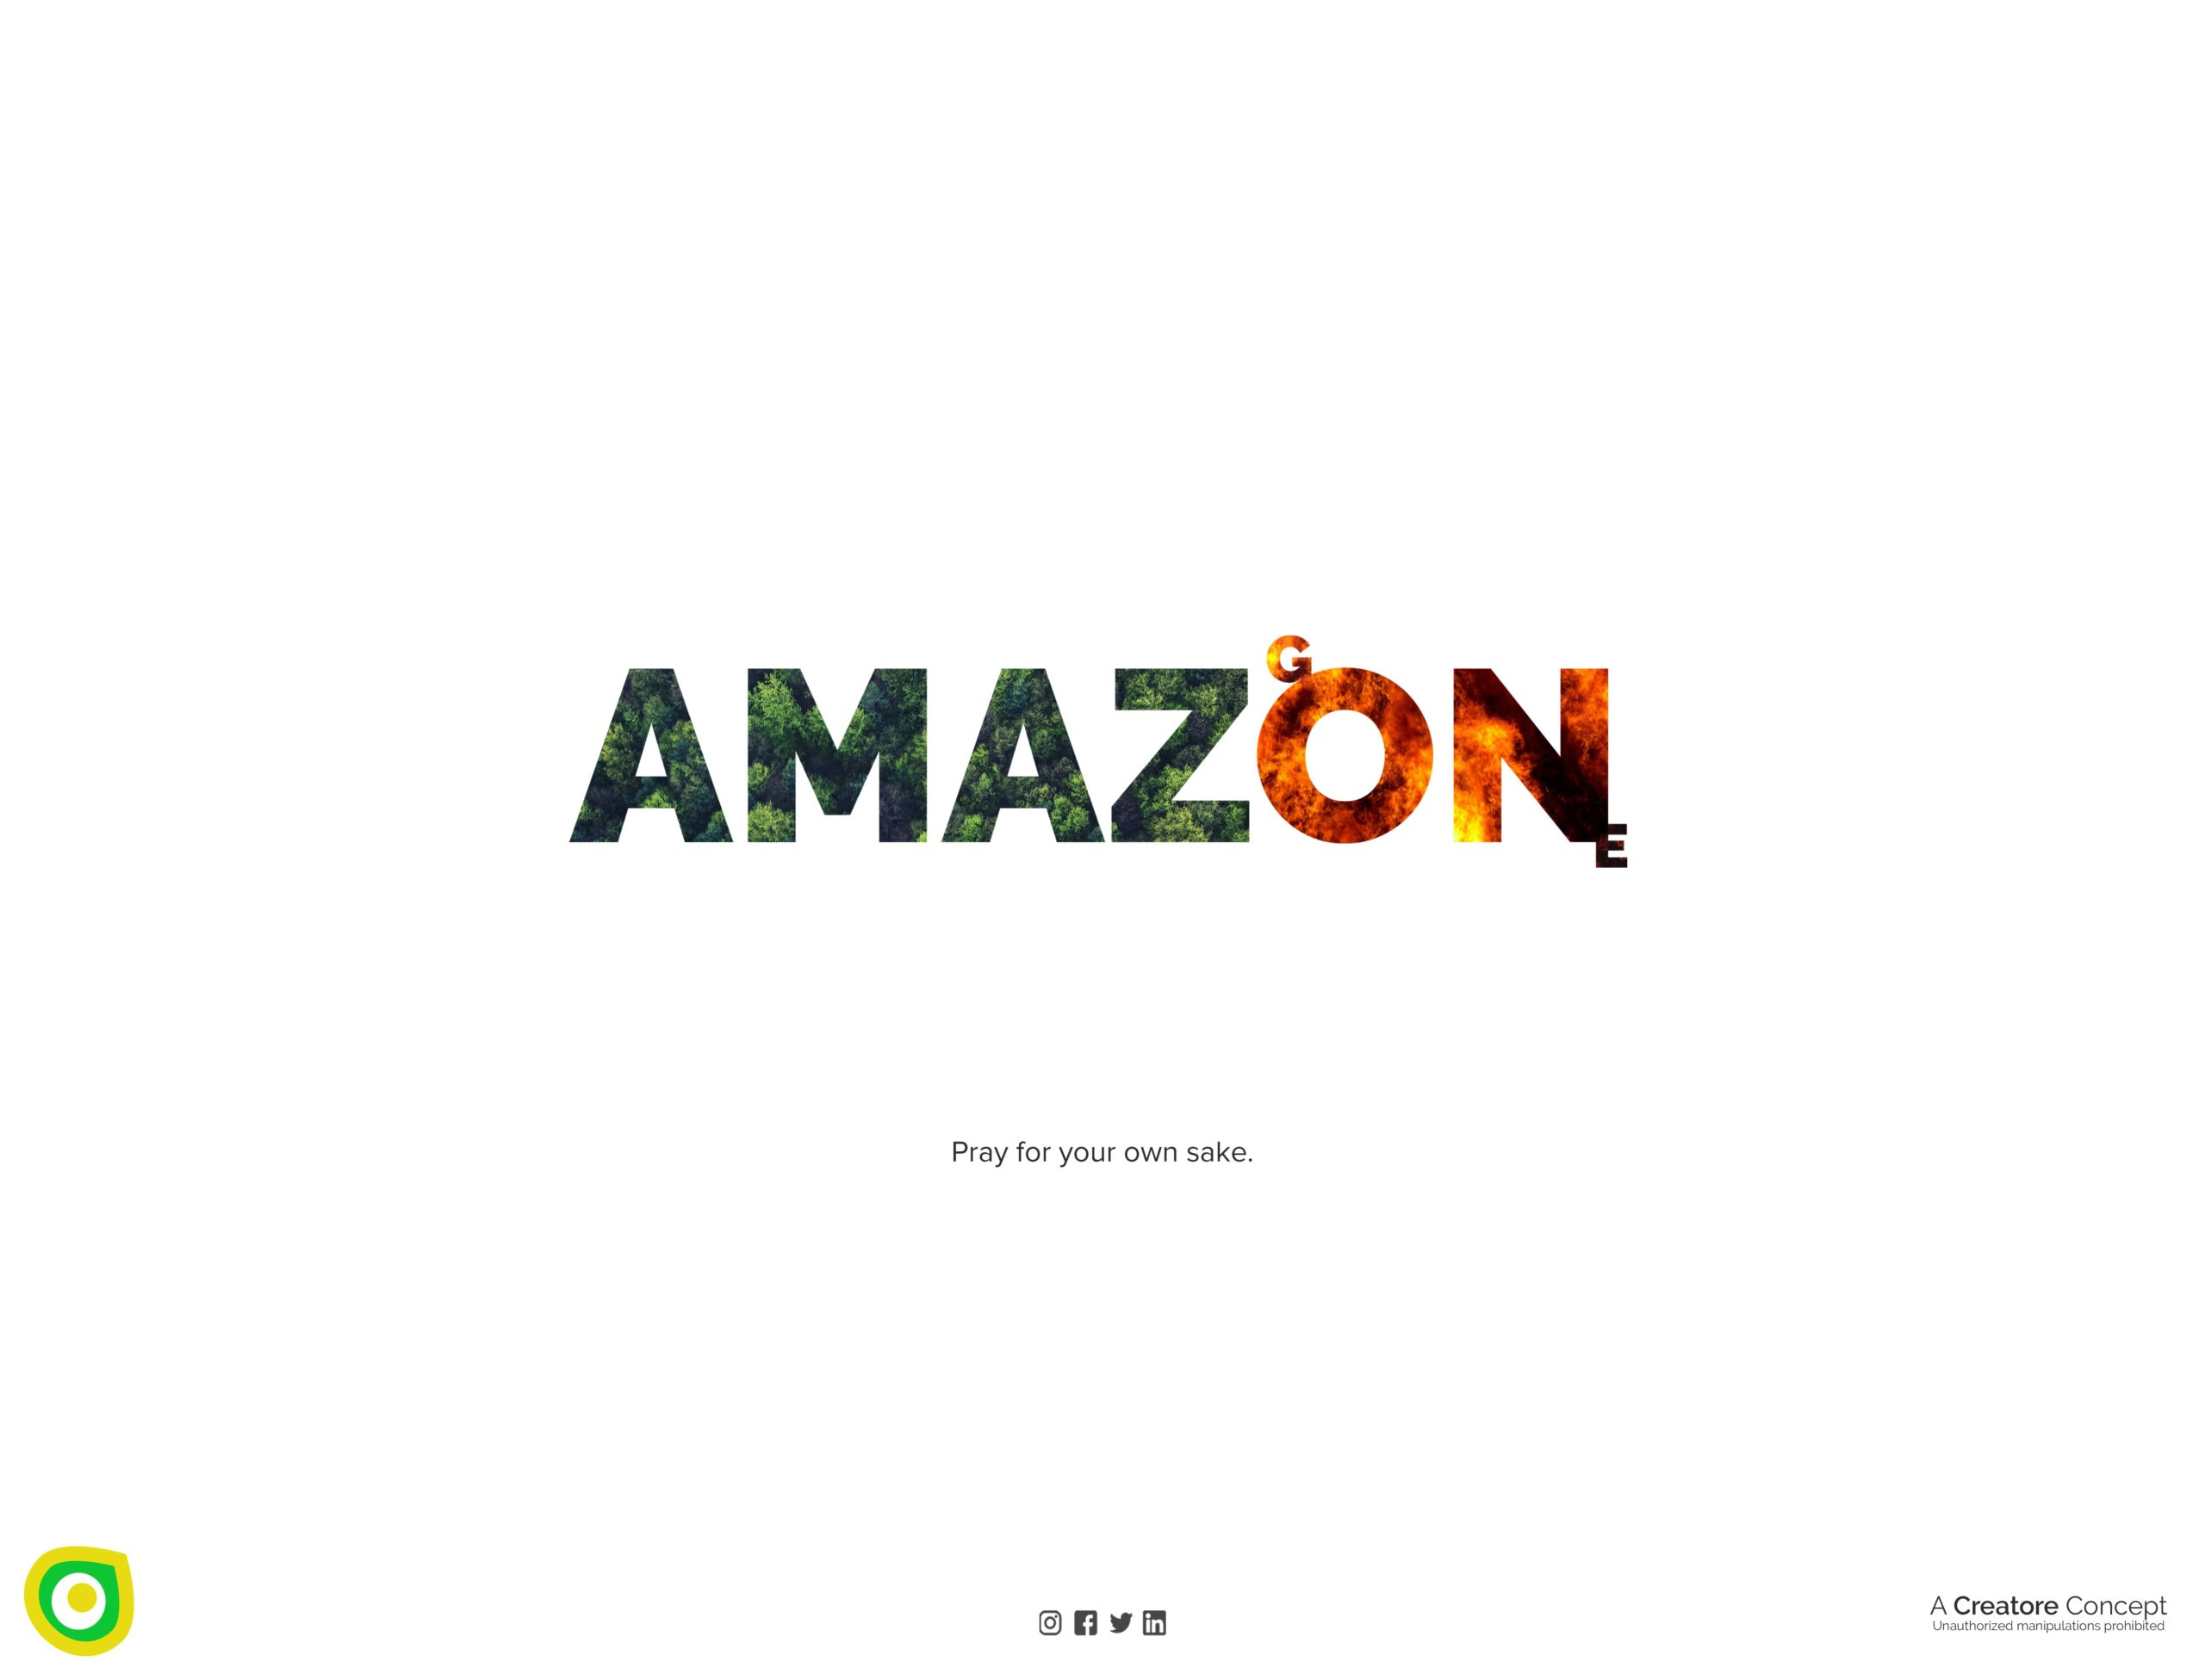 Creative Advertising and Marketing Agency Amazon Forest Fire Topical Post